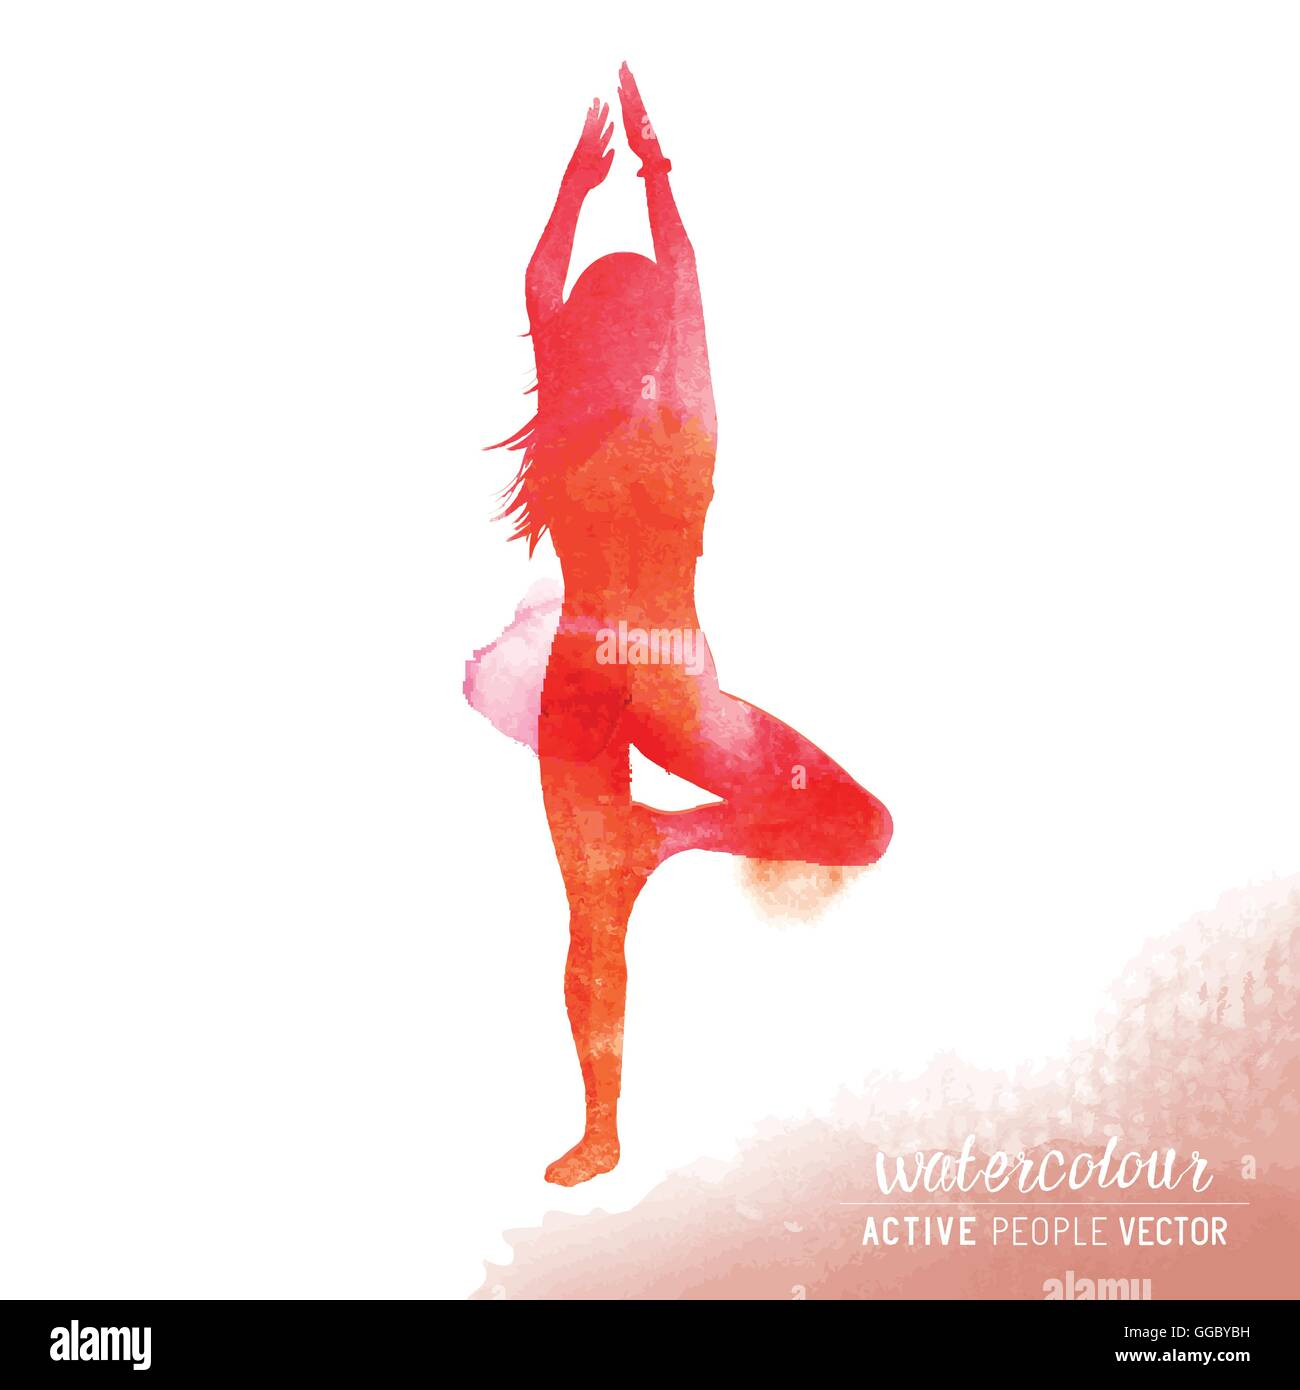 A young lady in a yoga position exercising - Watercolour vector illustration - Stock Vector